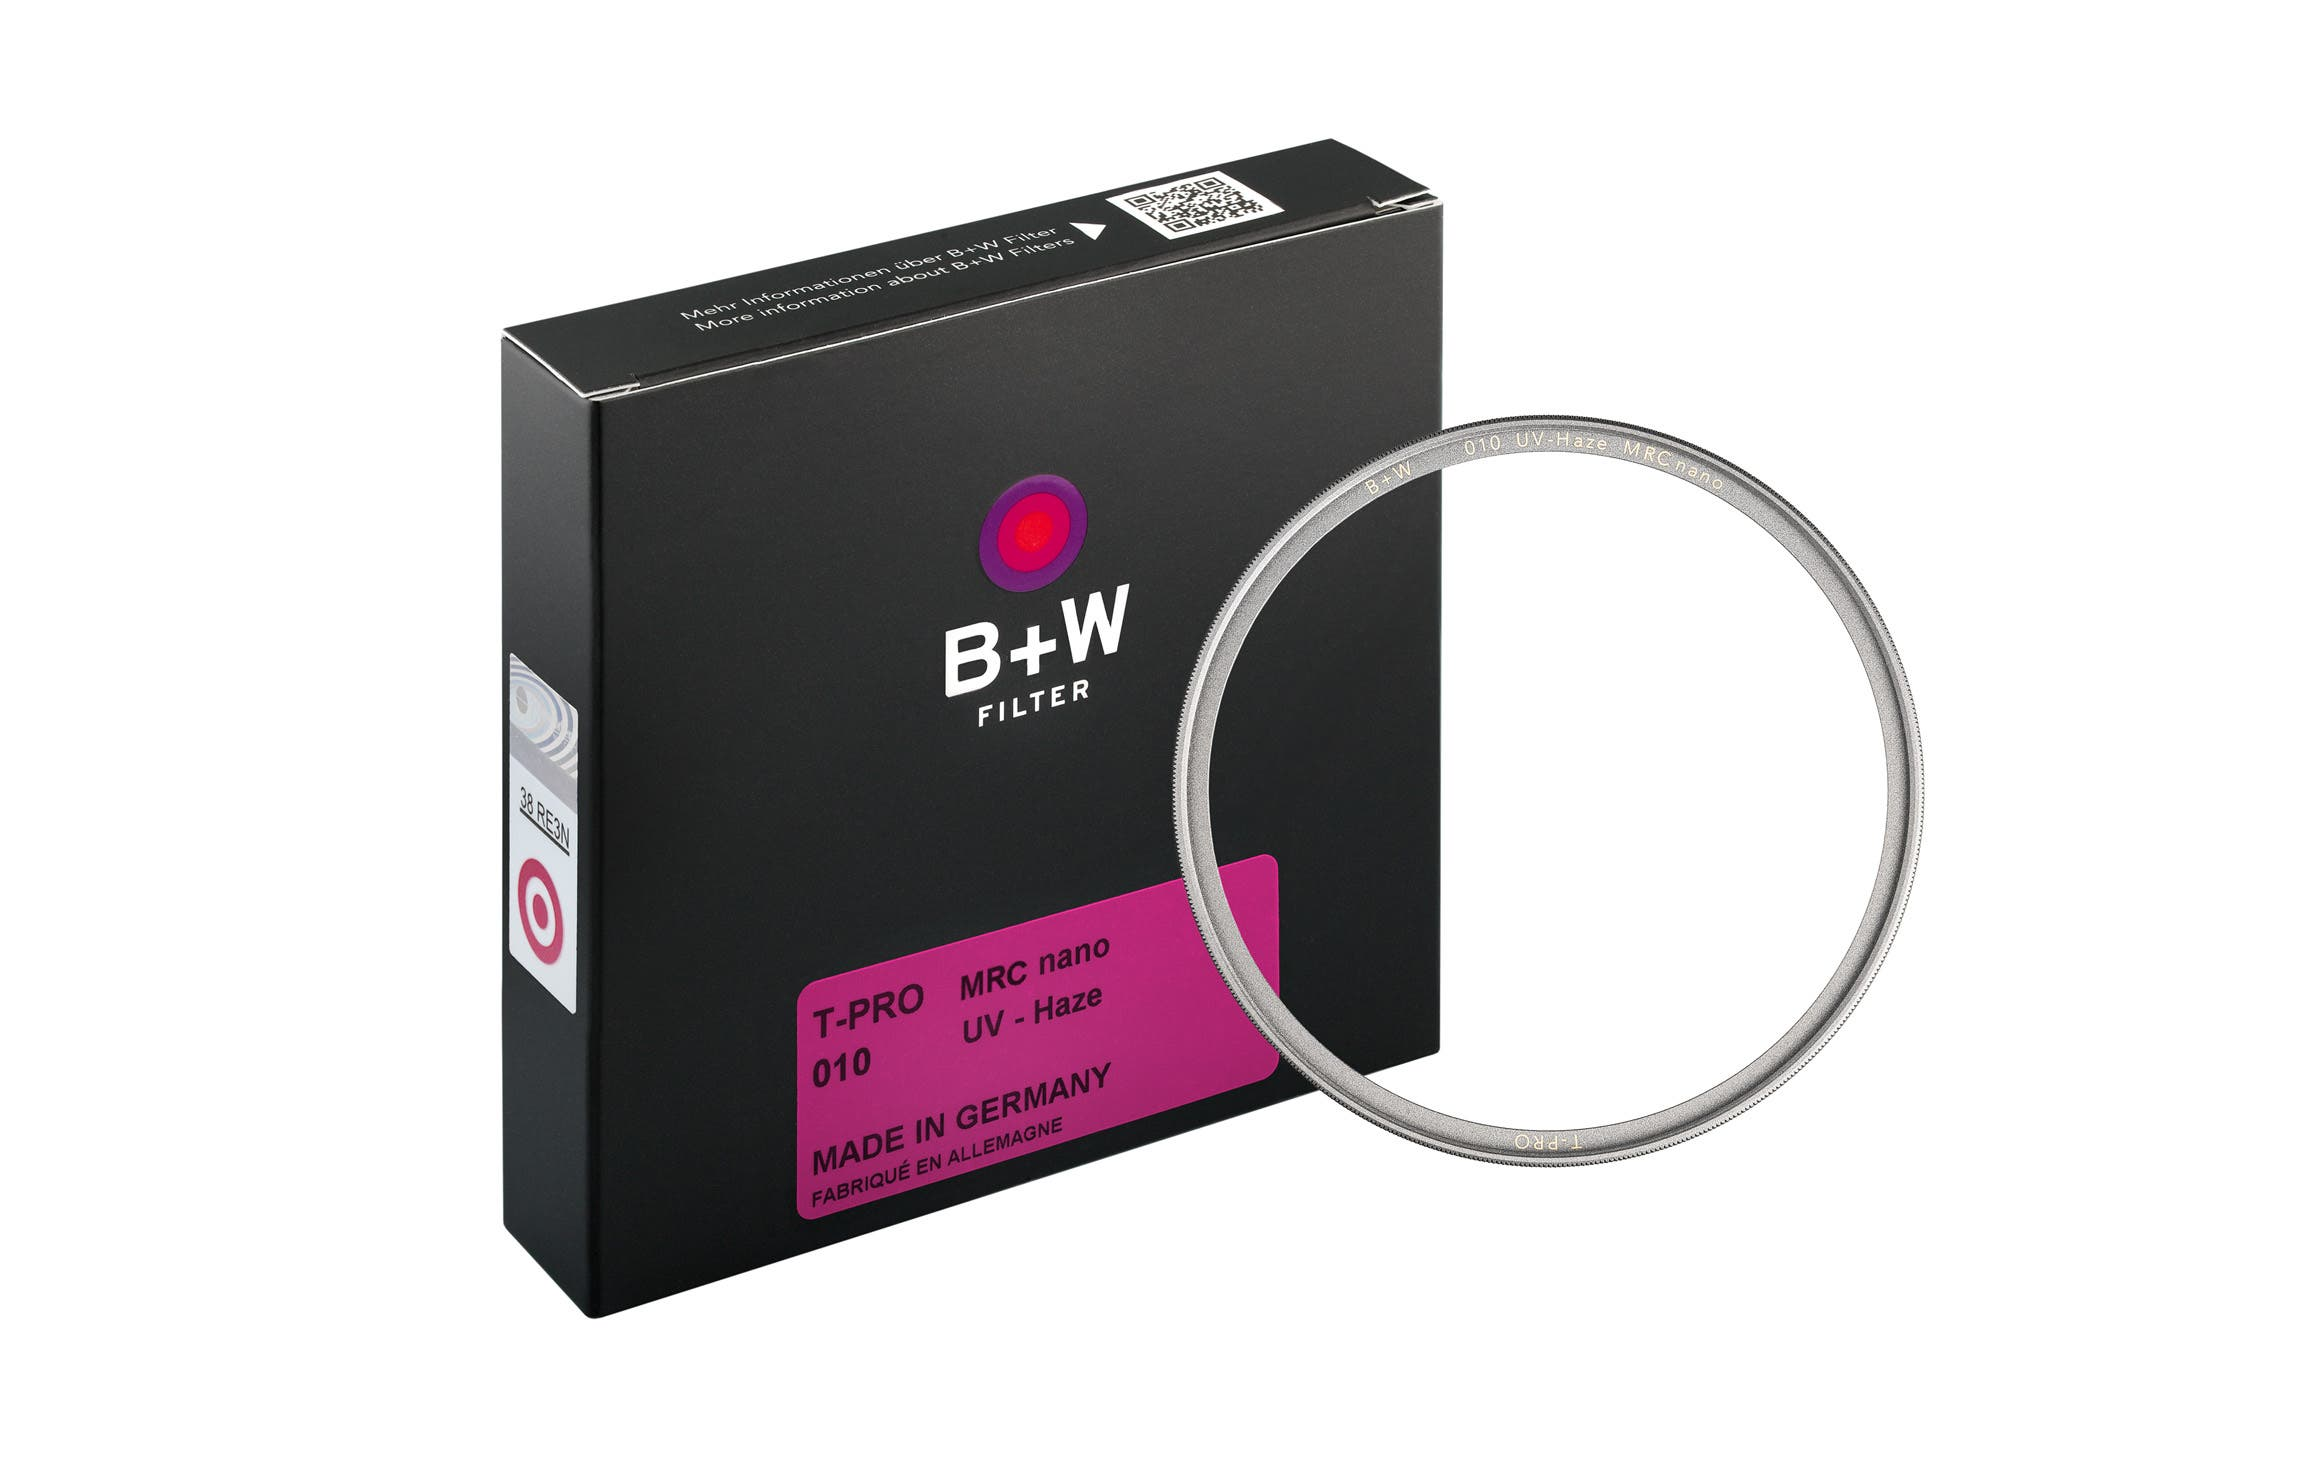 Schneider Kreuznach Announces New Additions to the B+W T-Pro Filters